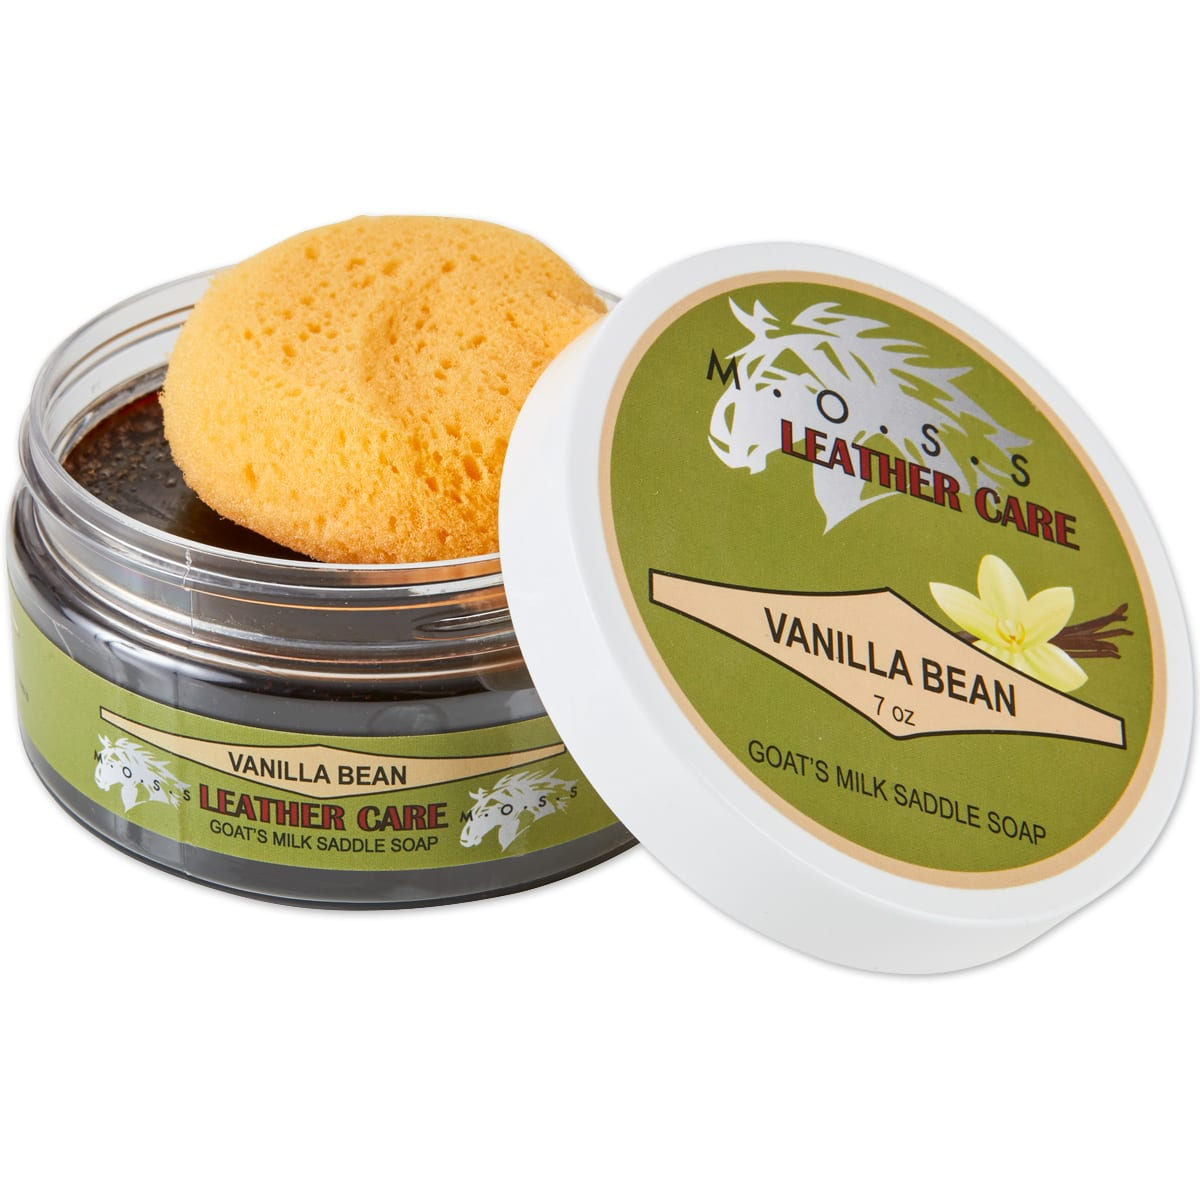 Moss Goat's Milk Saddle Soap